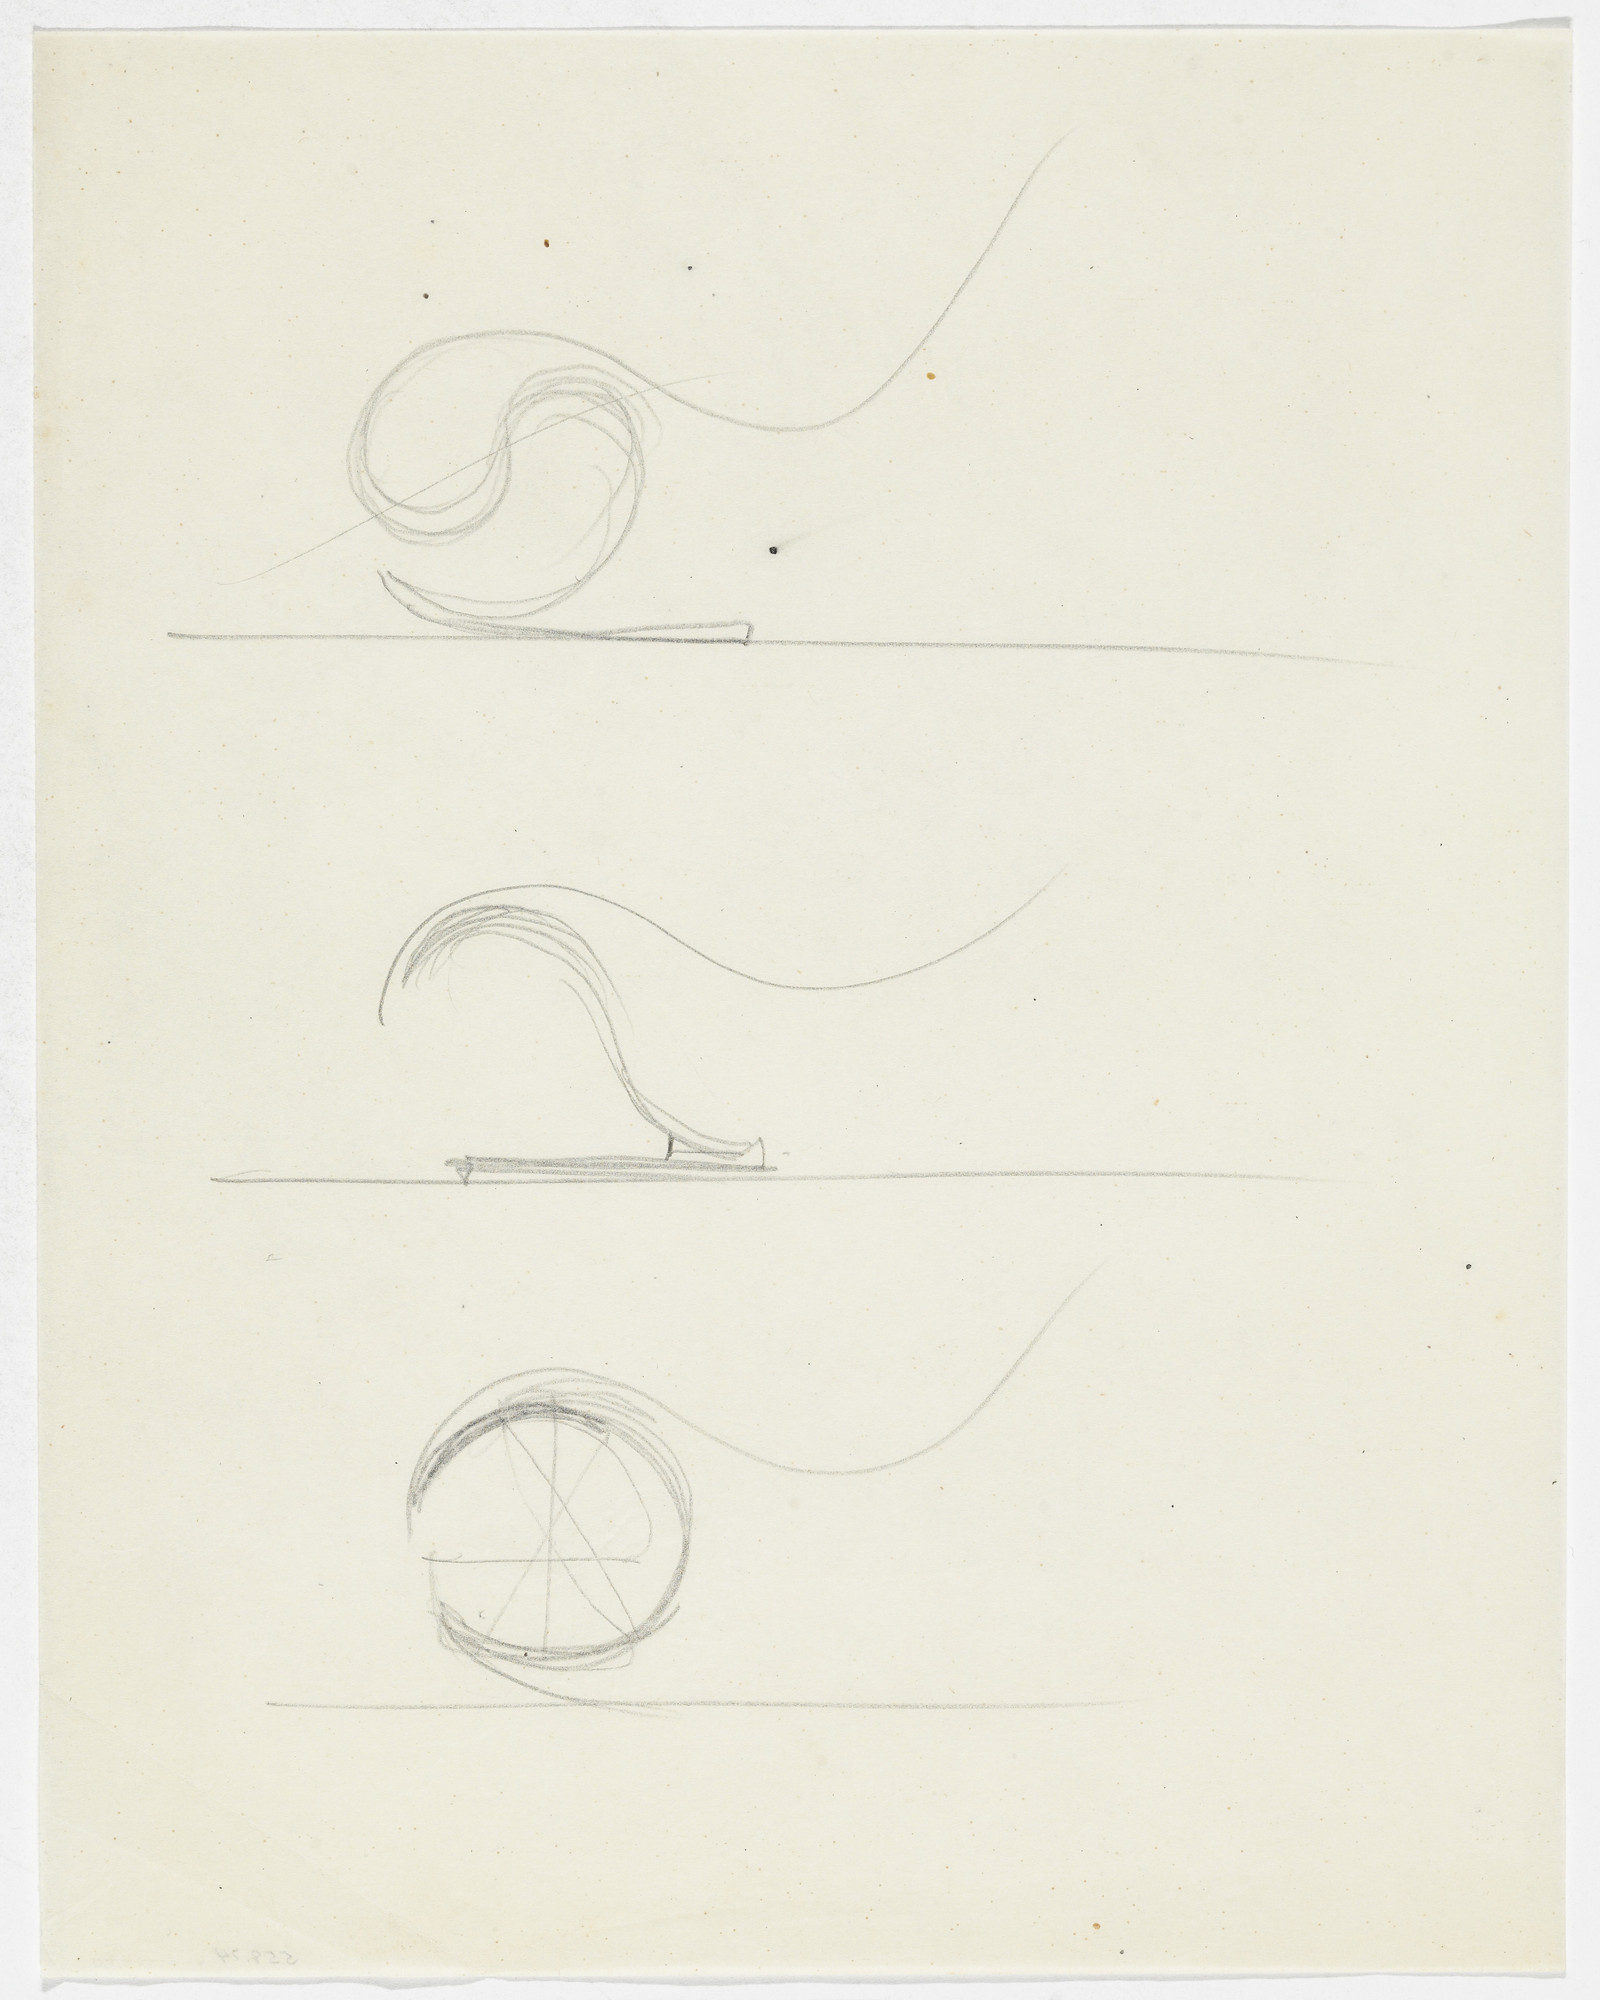 Ludwig Mies van der Rohe. Reclining Chair without Arms (Three elevation sketches). 1933-1934